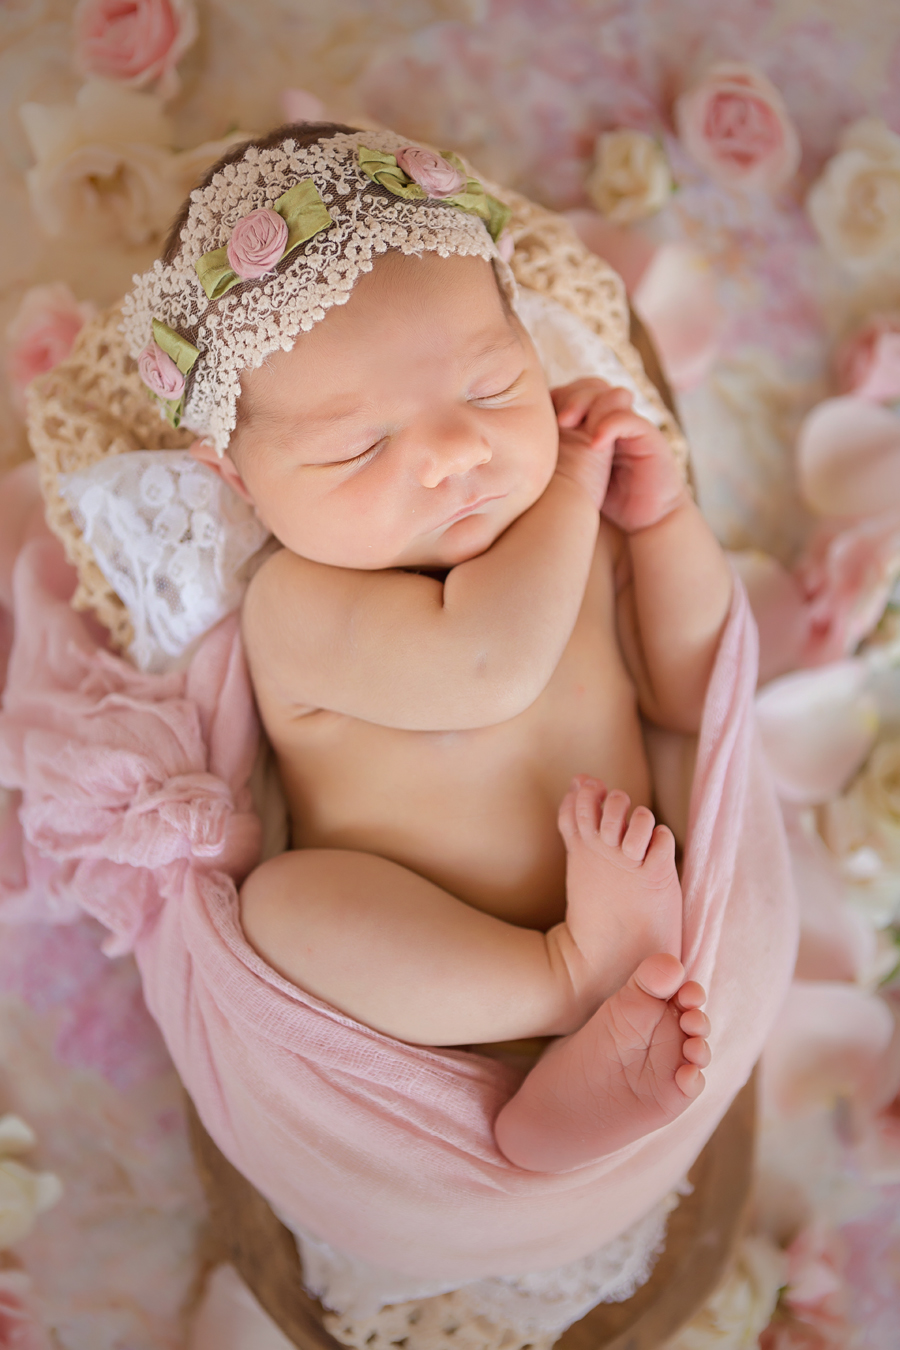 GrandRapidsnewbornphotographer17.jpg